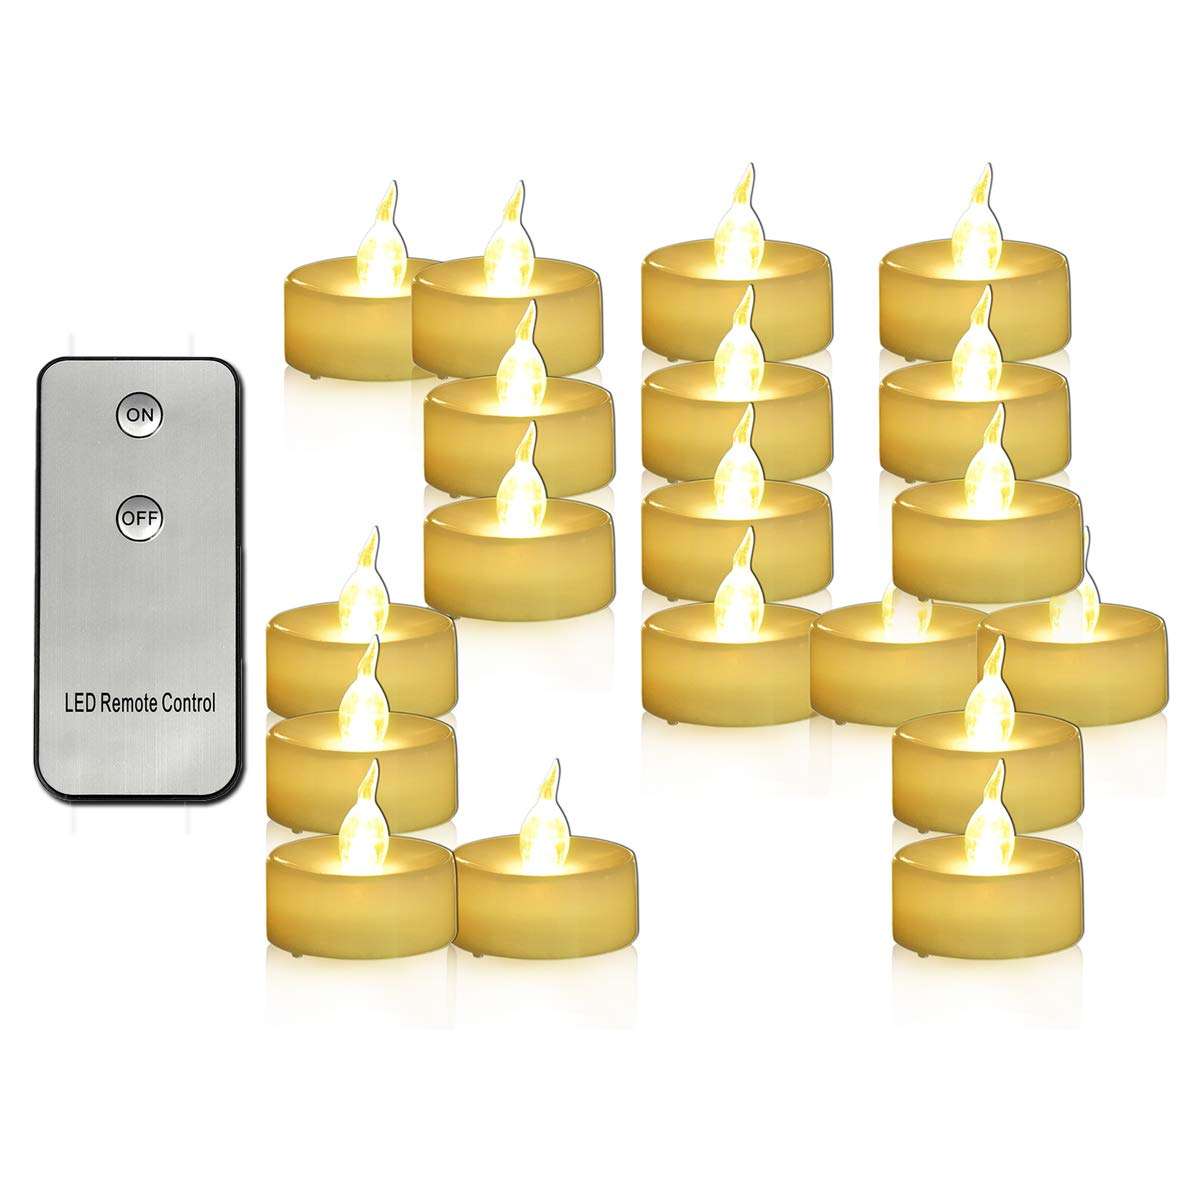 Youngerbaby 24 Pack Battery Operated Tea Lights with Remote Flickering Warm White Led Tealights Mini Flameless Candles Indoor Outdoor Wedding Centerpieces Decor Birthday Party Thanksgiving - 1.4 Inch